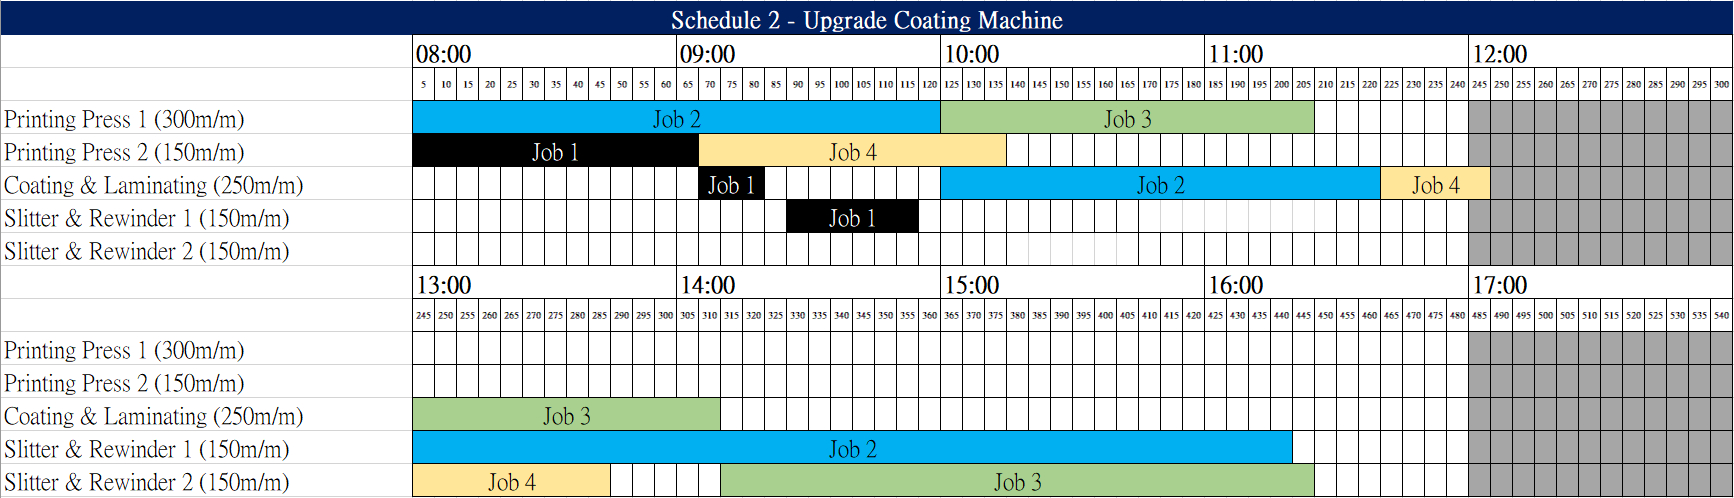 proimages/blog/production_schedule_2_-_upgrade_coating.jpg